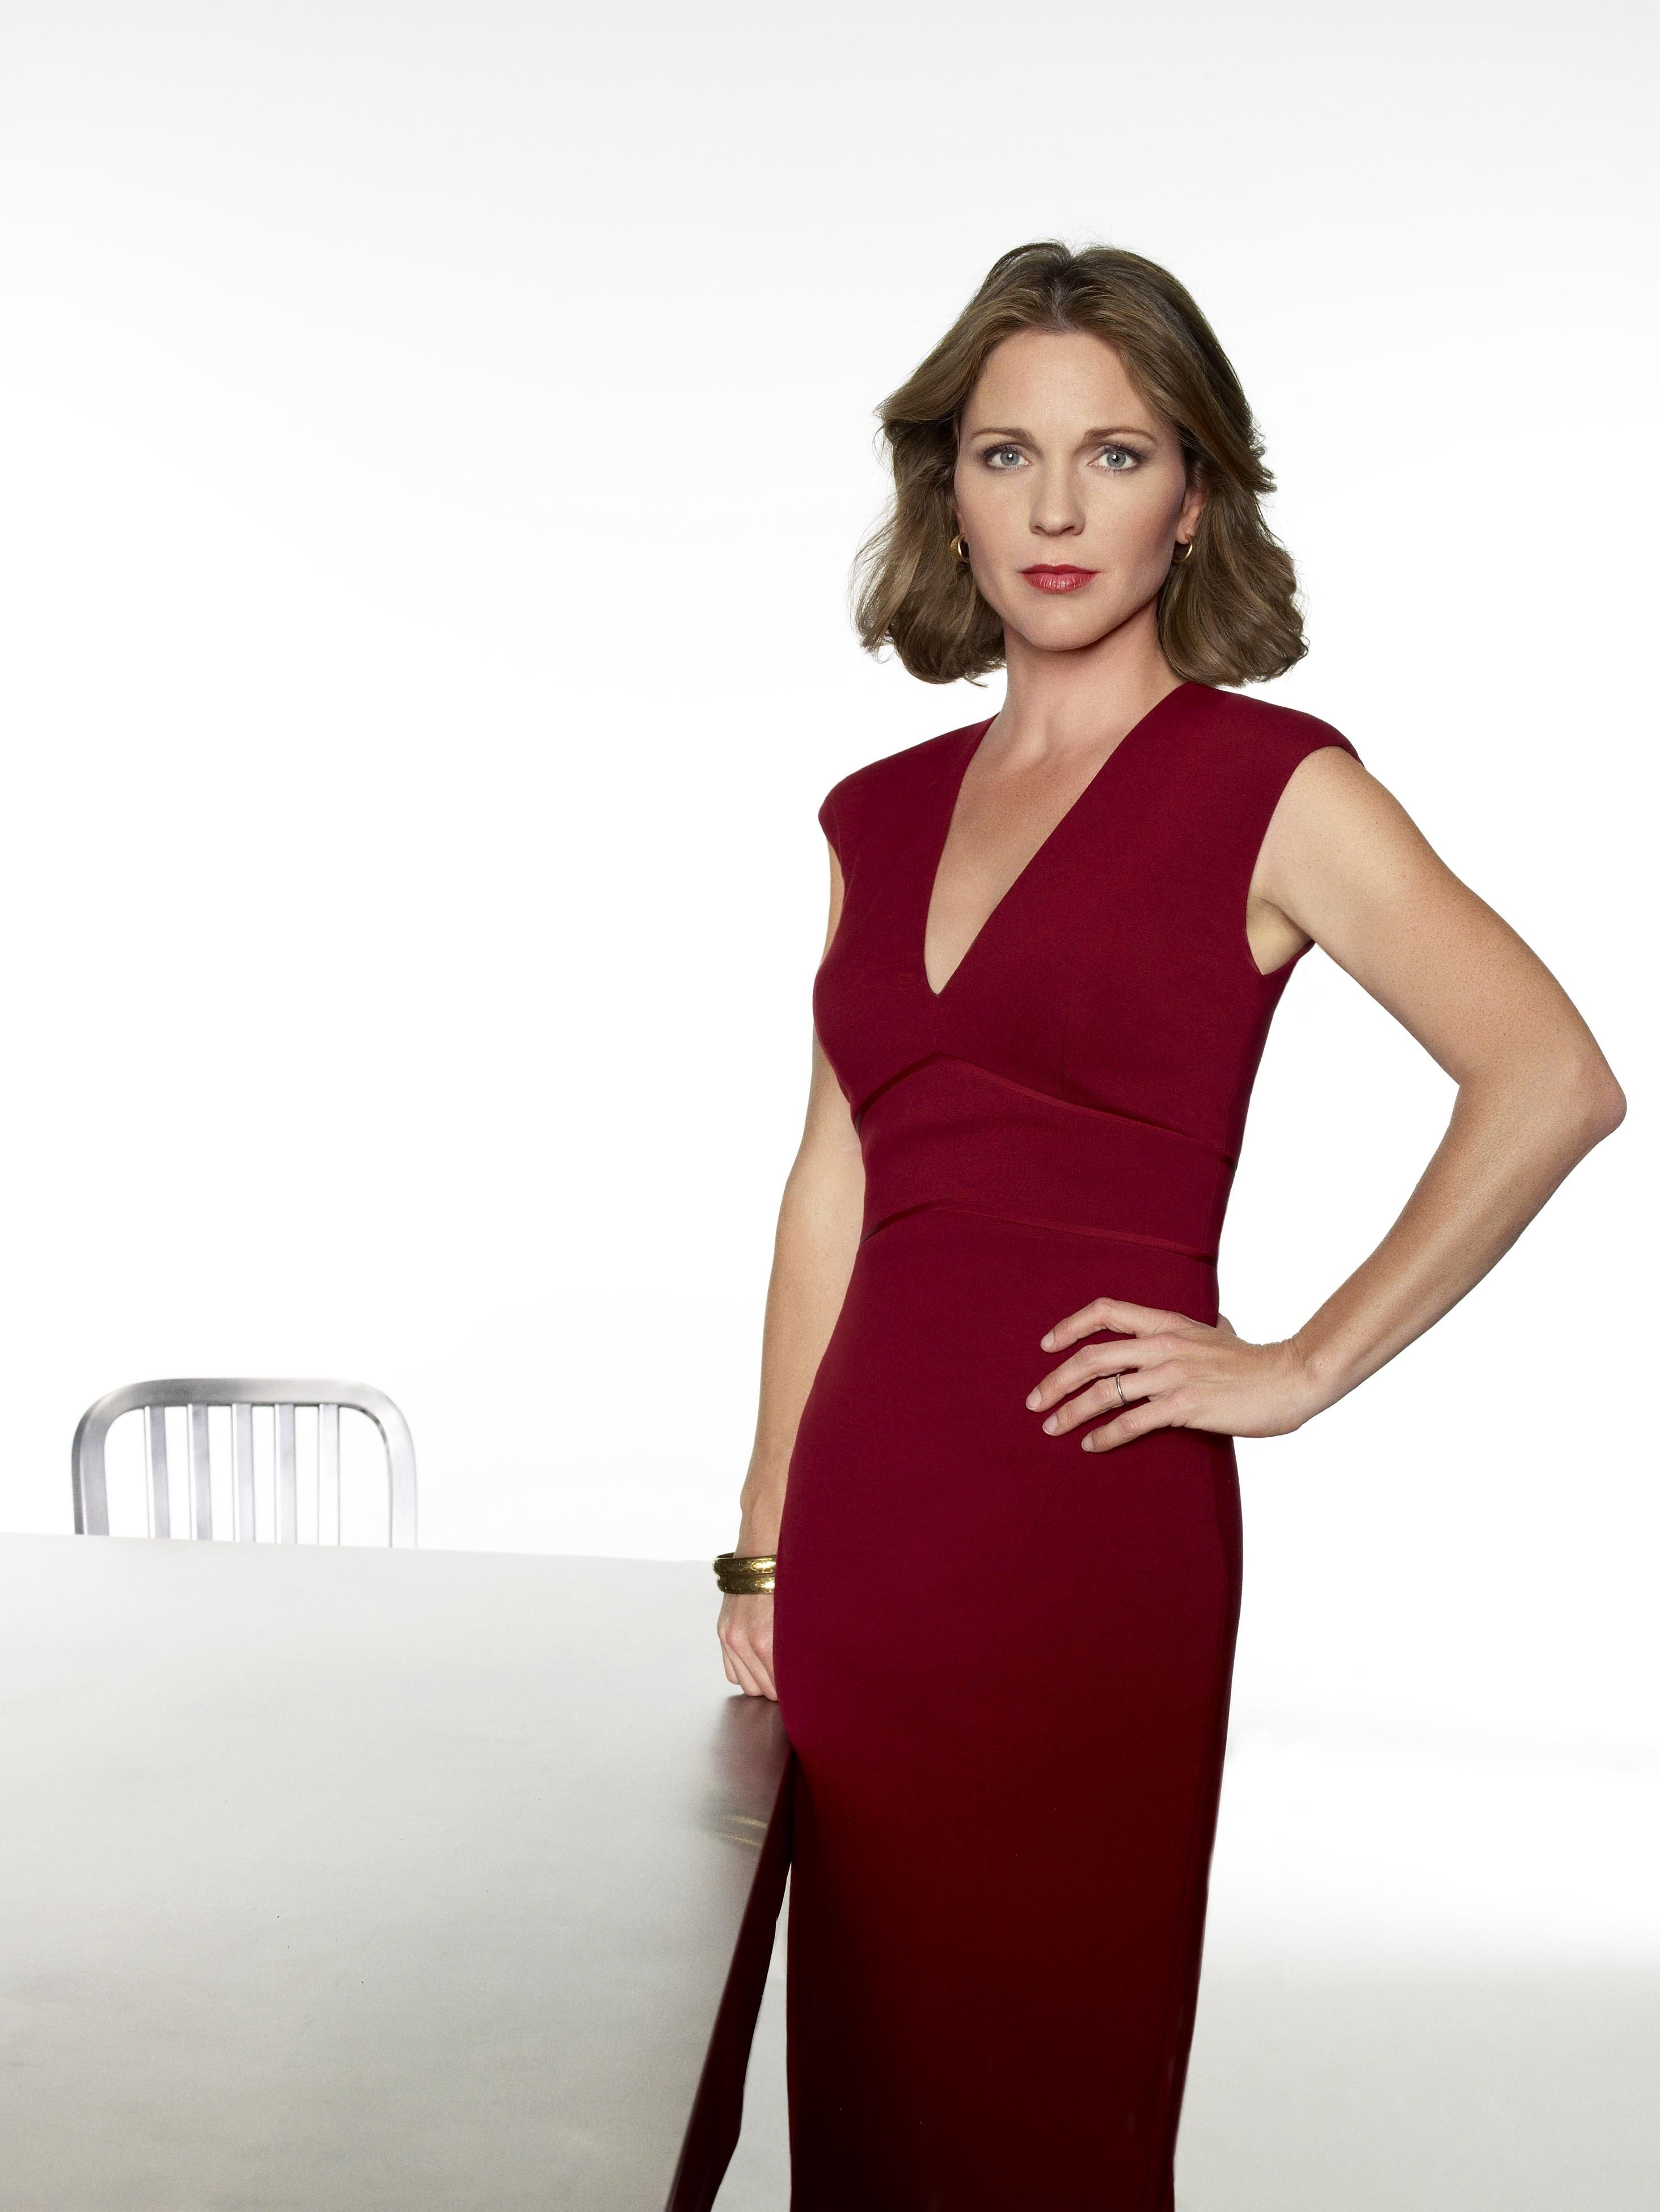 Discussion on this topic: Jane Brucker, kelli-williams/